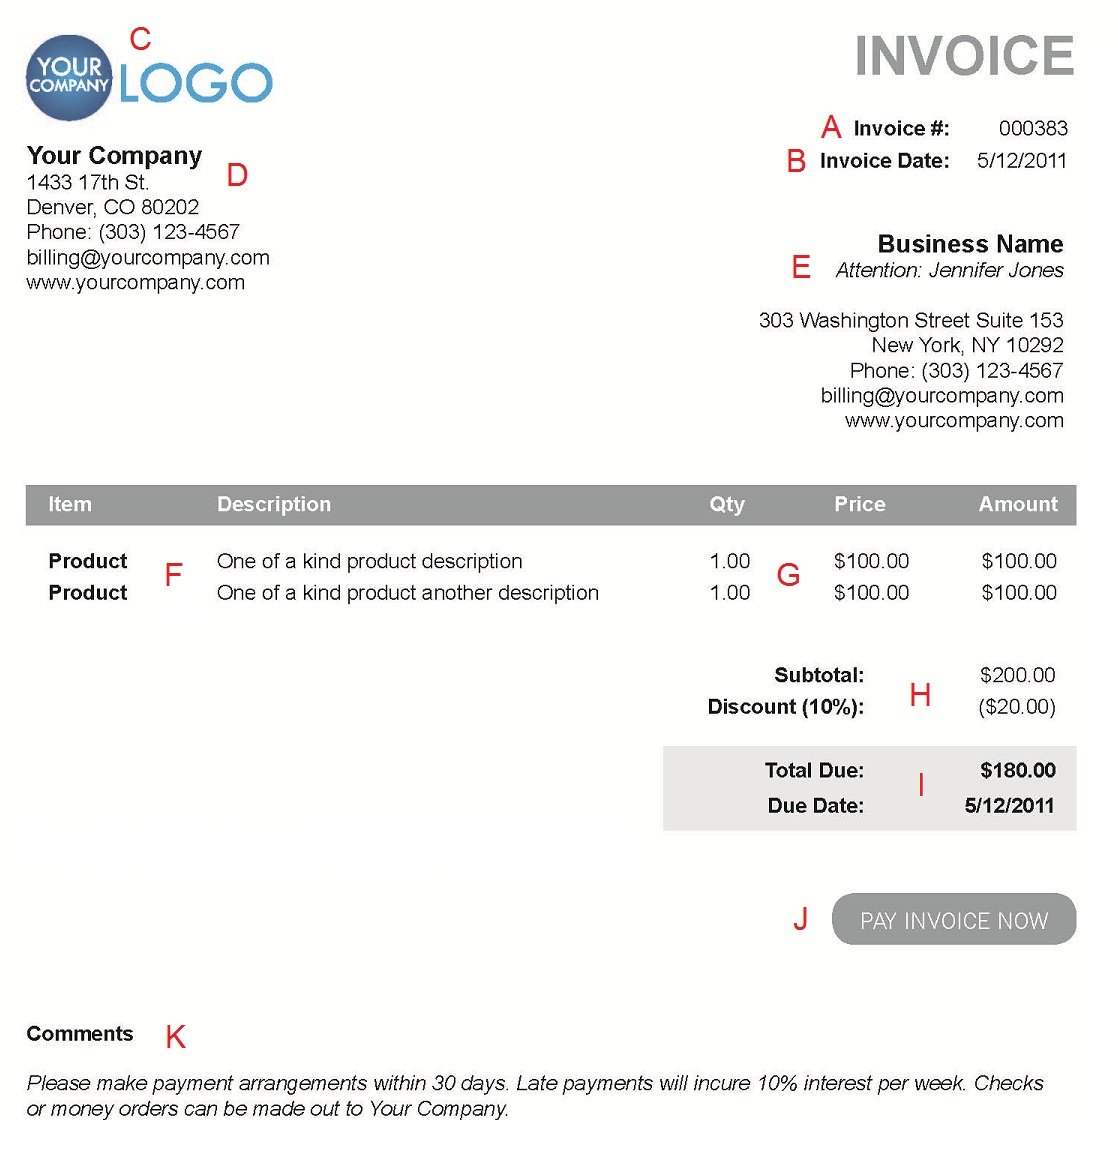 Proatmealus  Prepossessing The  Different Sections Of An Electronic Payment Invoice With Inspiring A  With Delightful Osceola County Business Tax Receipt Also Healthy Receipts In Addition I Acknowledge Receipt Of Your Email And Non Profit Donation Receipt Form As Well As What Are Cash Receipts In Accounting Additionally Cost Of Certified Mail Return Receipt Requested From Paysimplecom With Proatmealus  Inspiring The  Different Sections Of An Electronic Payment Invoice With Delightful A  And Prepossessing Osceola County Business Tax Receipt Also Healthy Receipts In Addition I Acknowledge Receipt Of Your Email From Paysimplecom